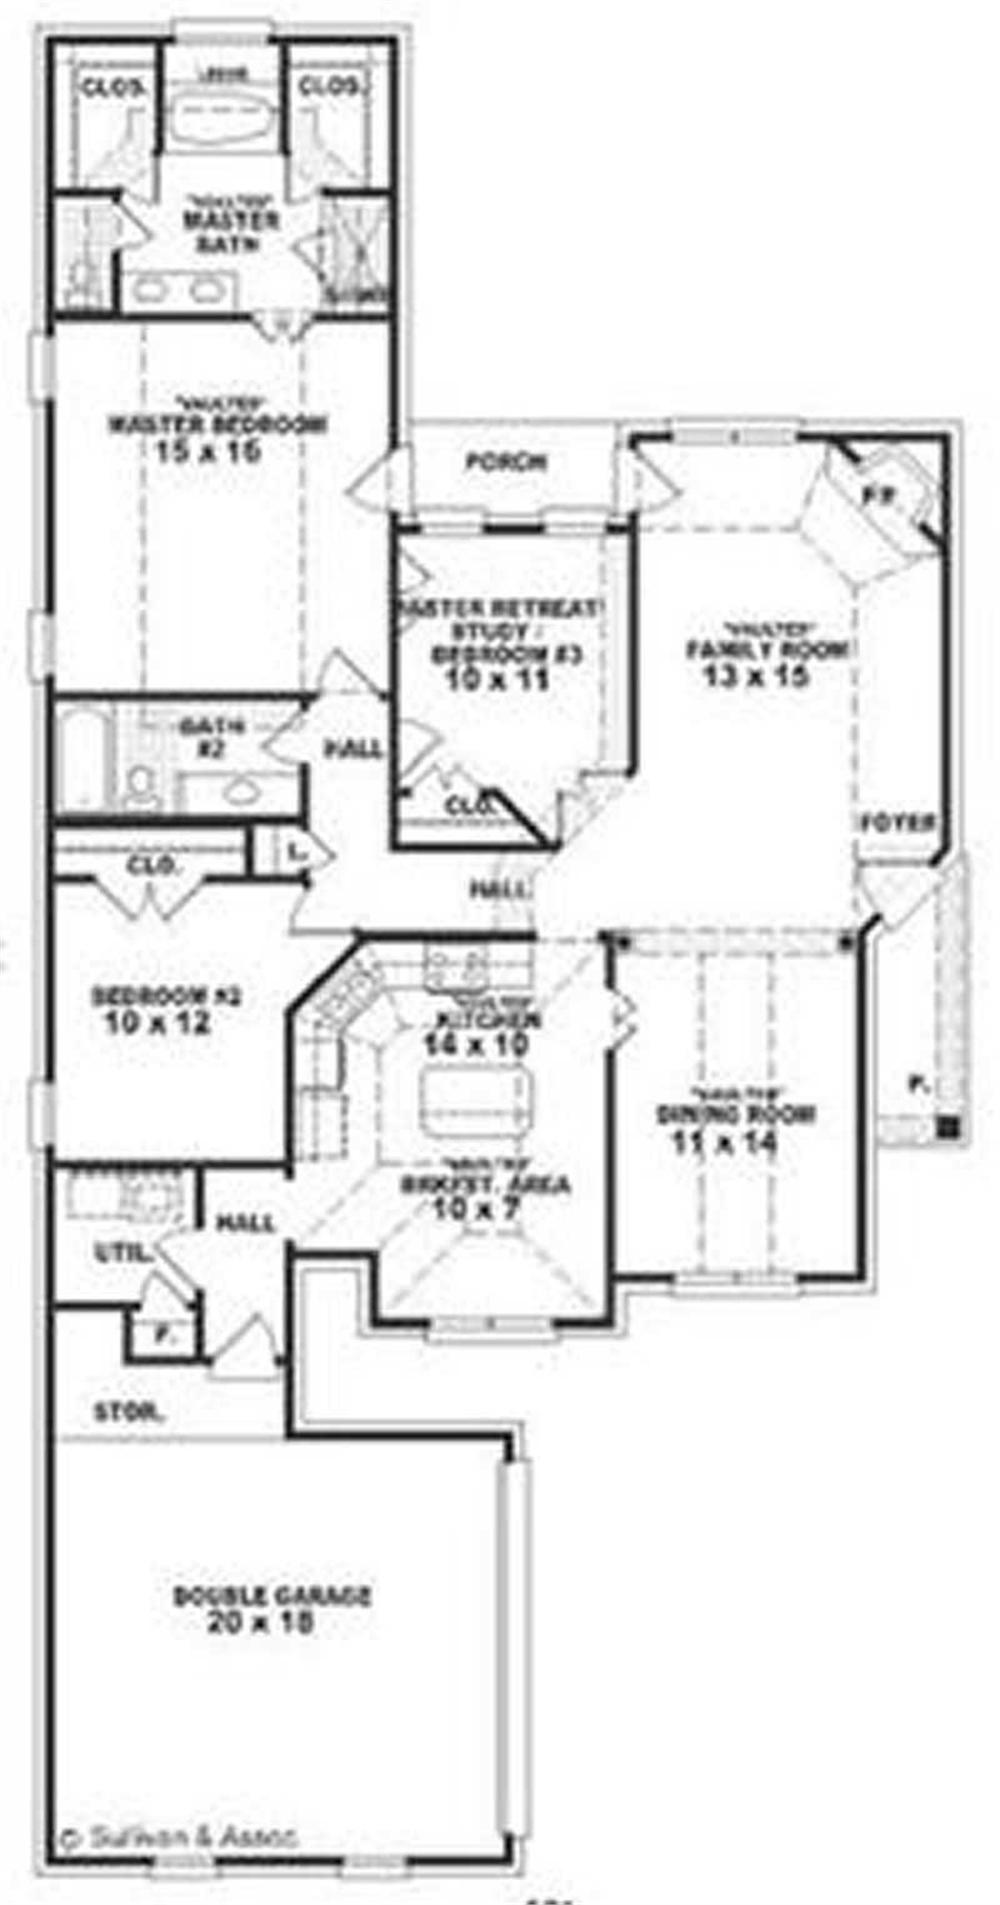 Large Images For House Plan 170 2207